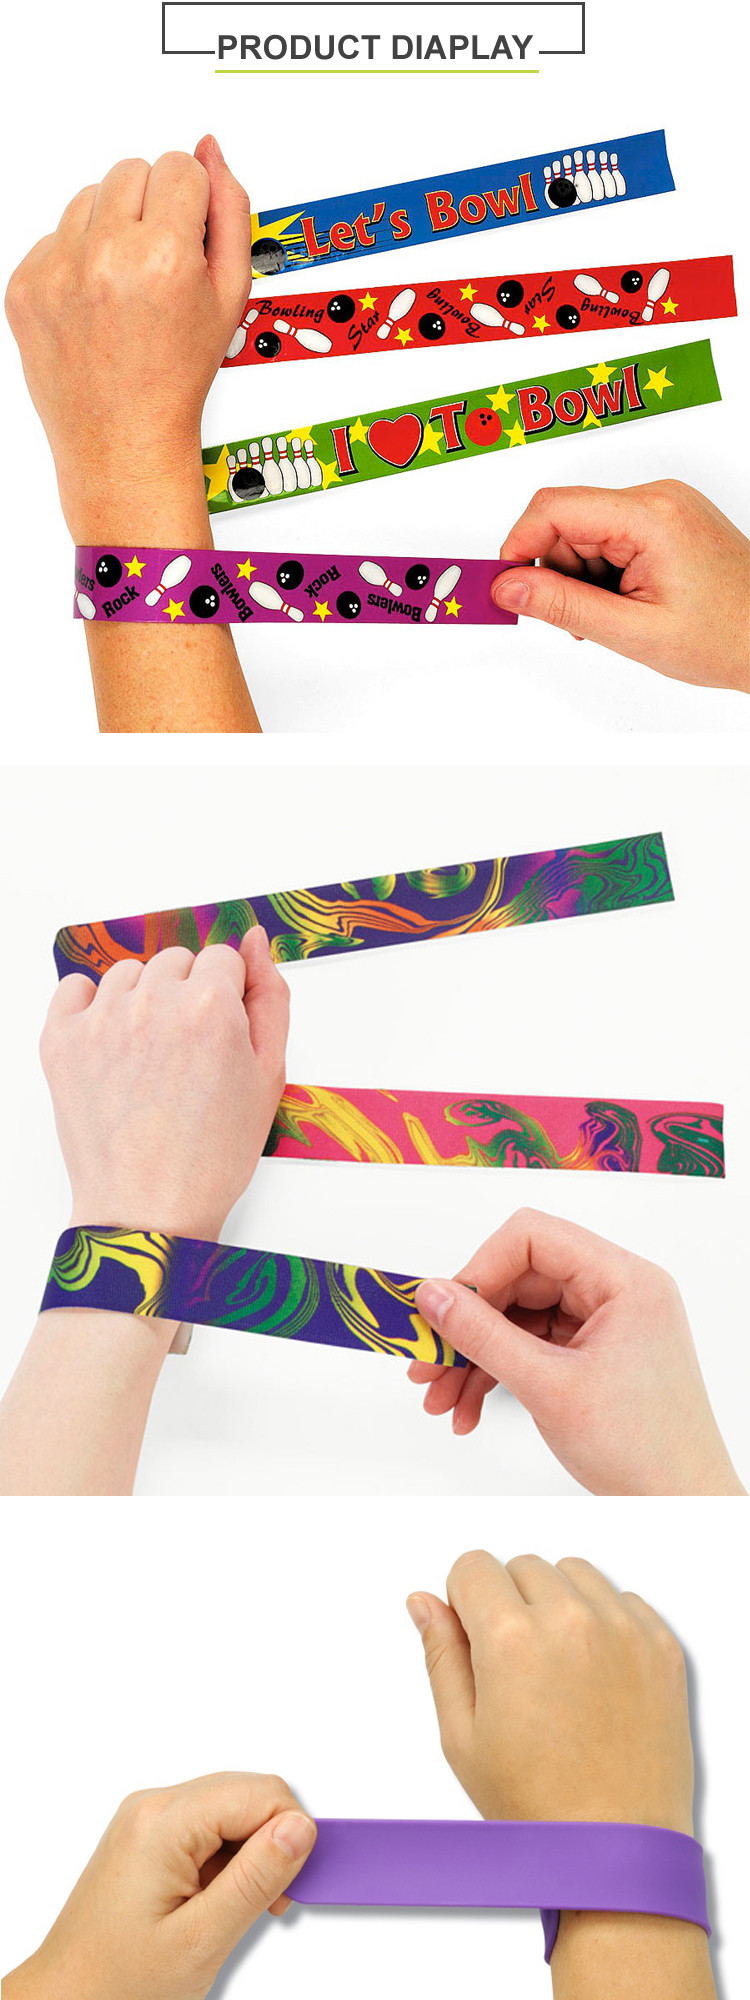 Cheap Custom PVC slap band - slap band with full color logo for kids